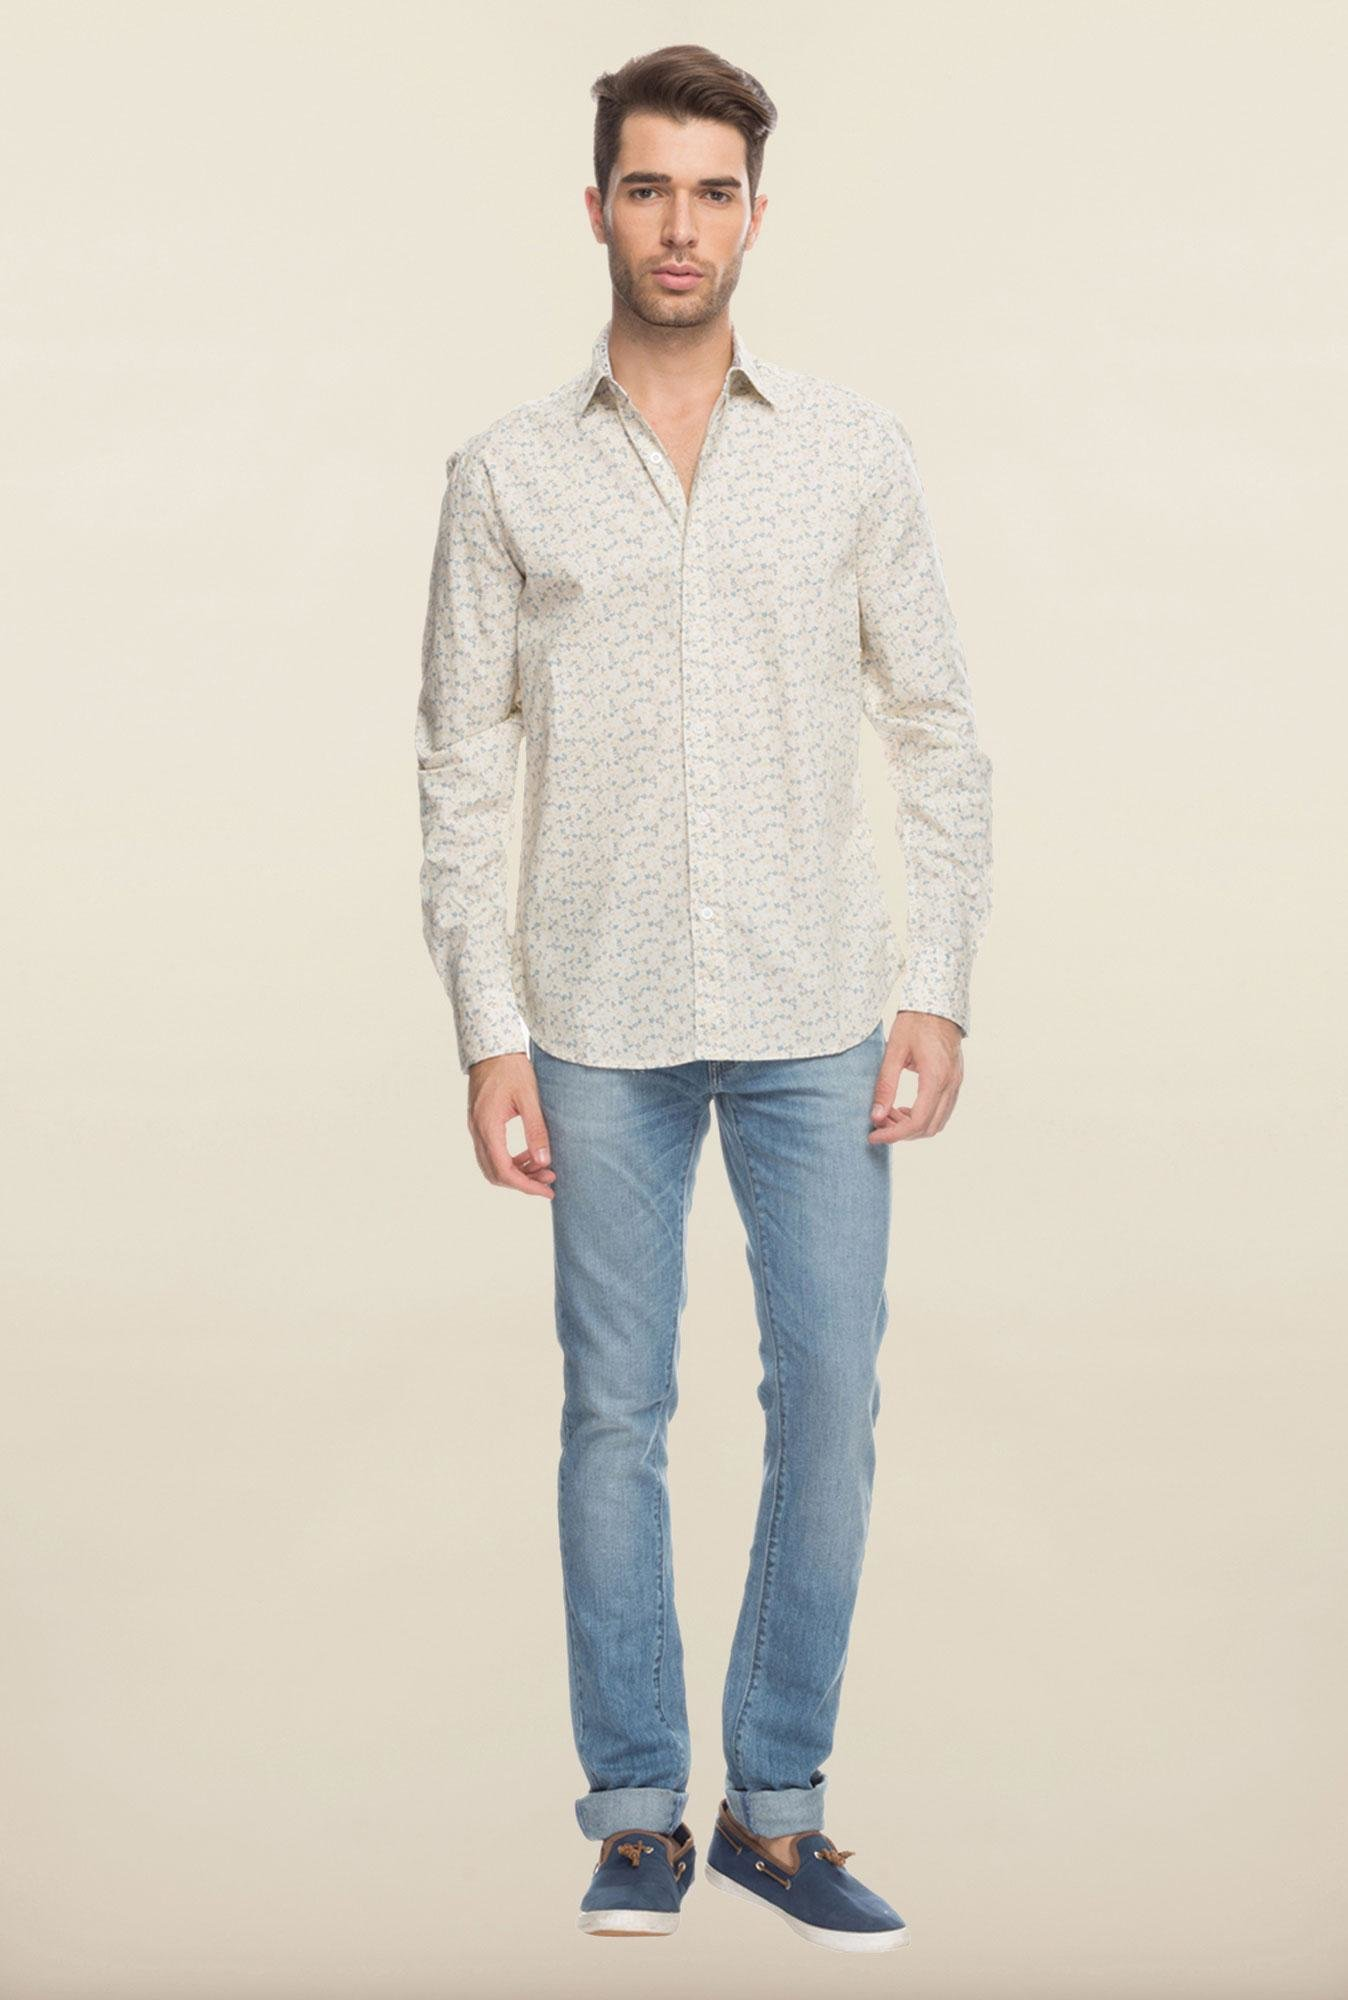 Cottonworld Beige Printed Casual Shirt